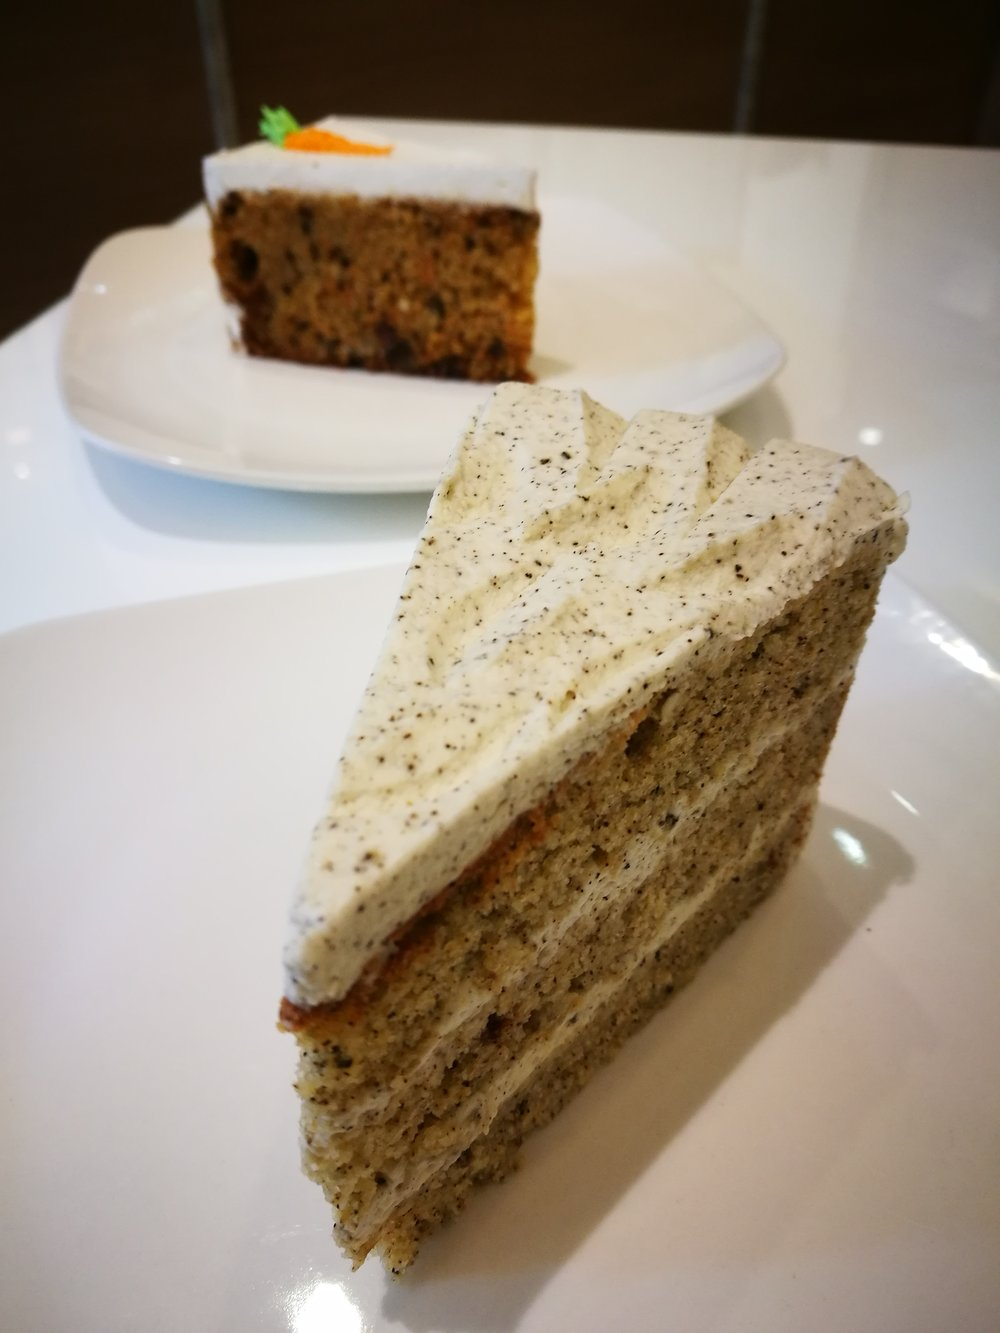 Stick to the Earl Grey Lemon Cake at Ginger Bakery at 55 Johnston Road in Wan Chai. It's their bestseller!